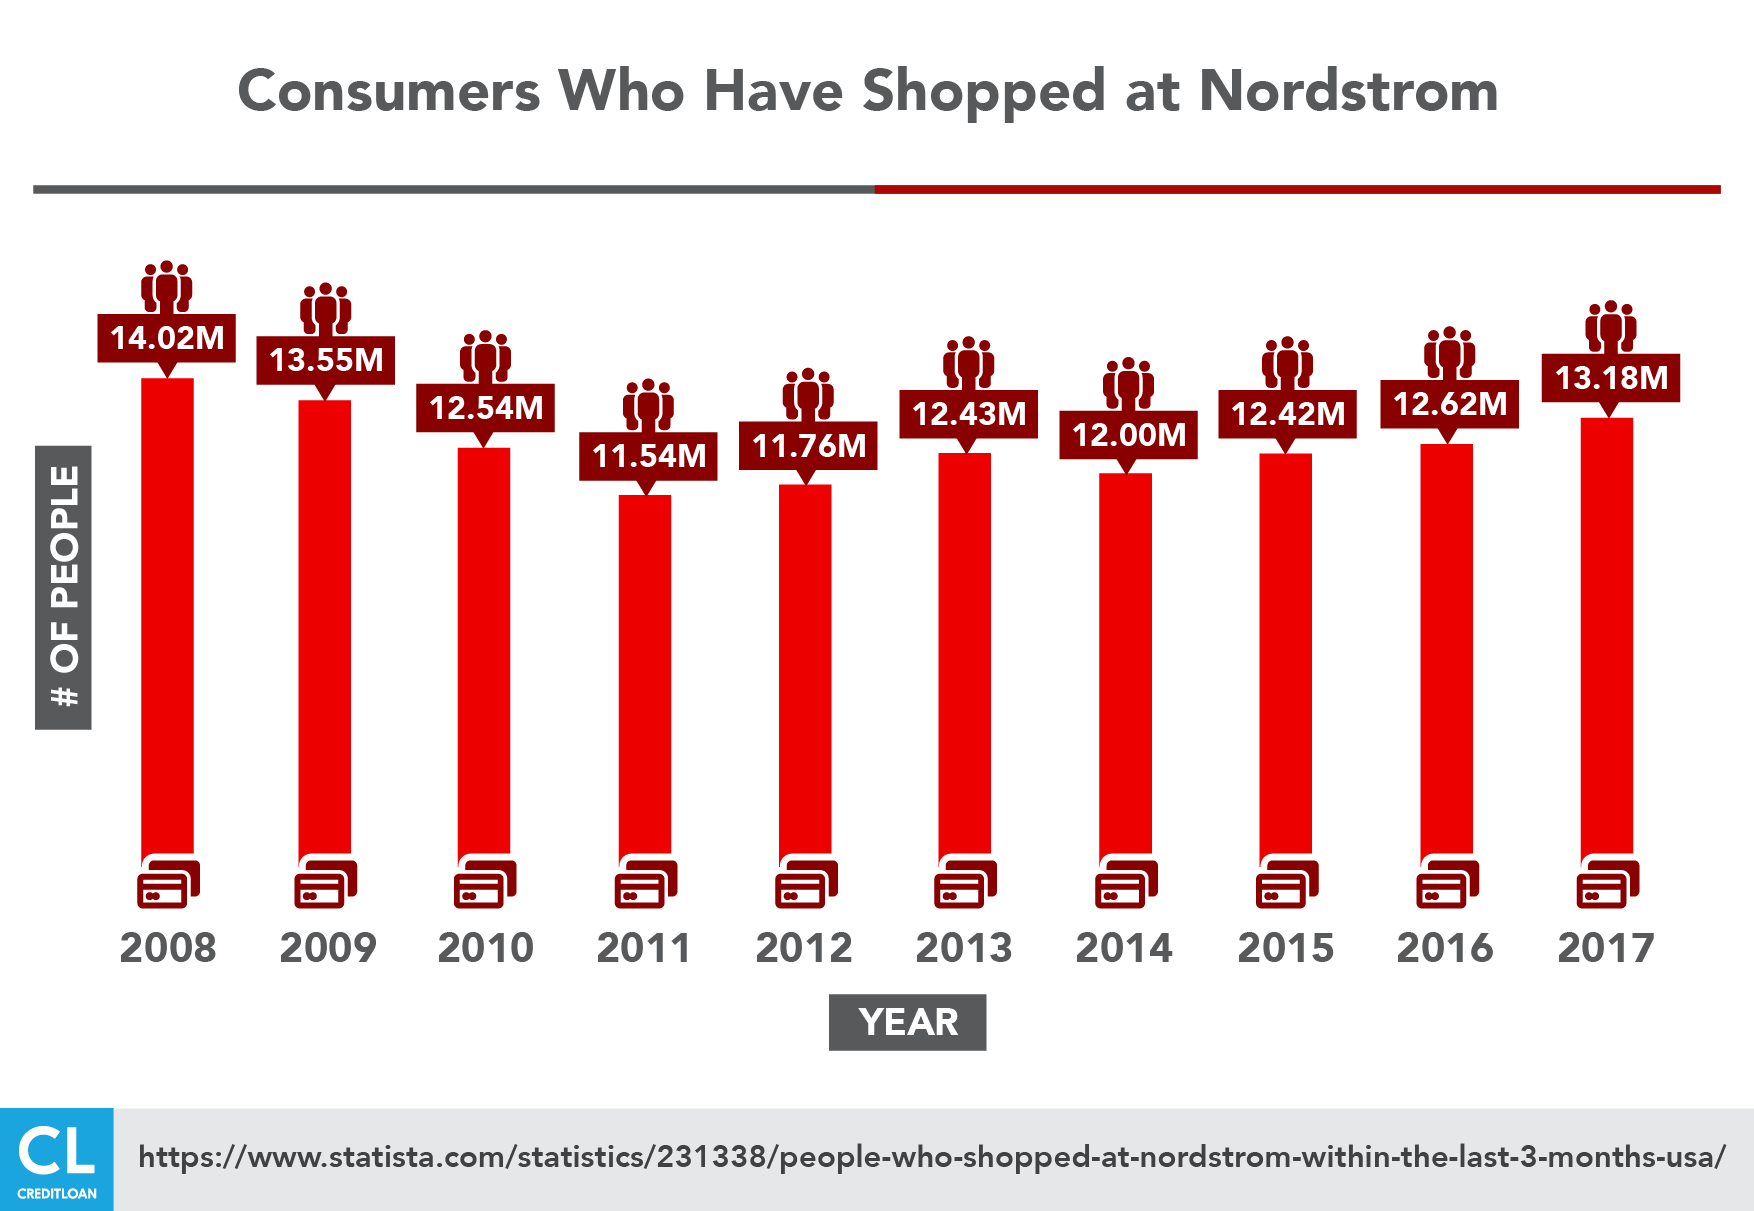 Consumers Who Have Shopped at Nordstrom from 2008-2017